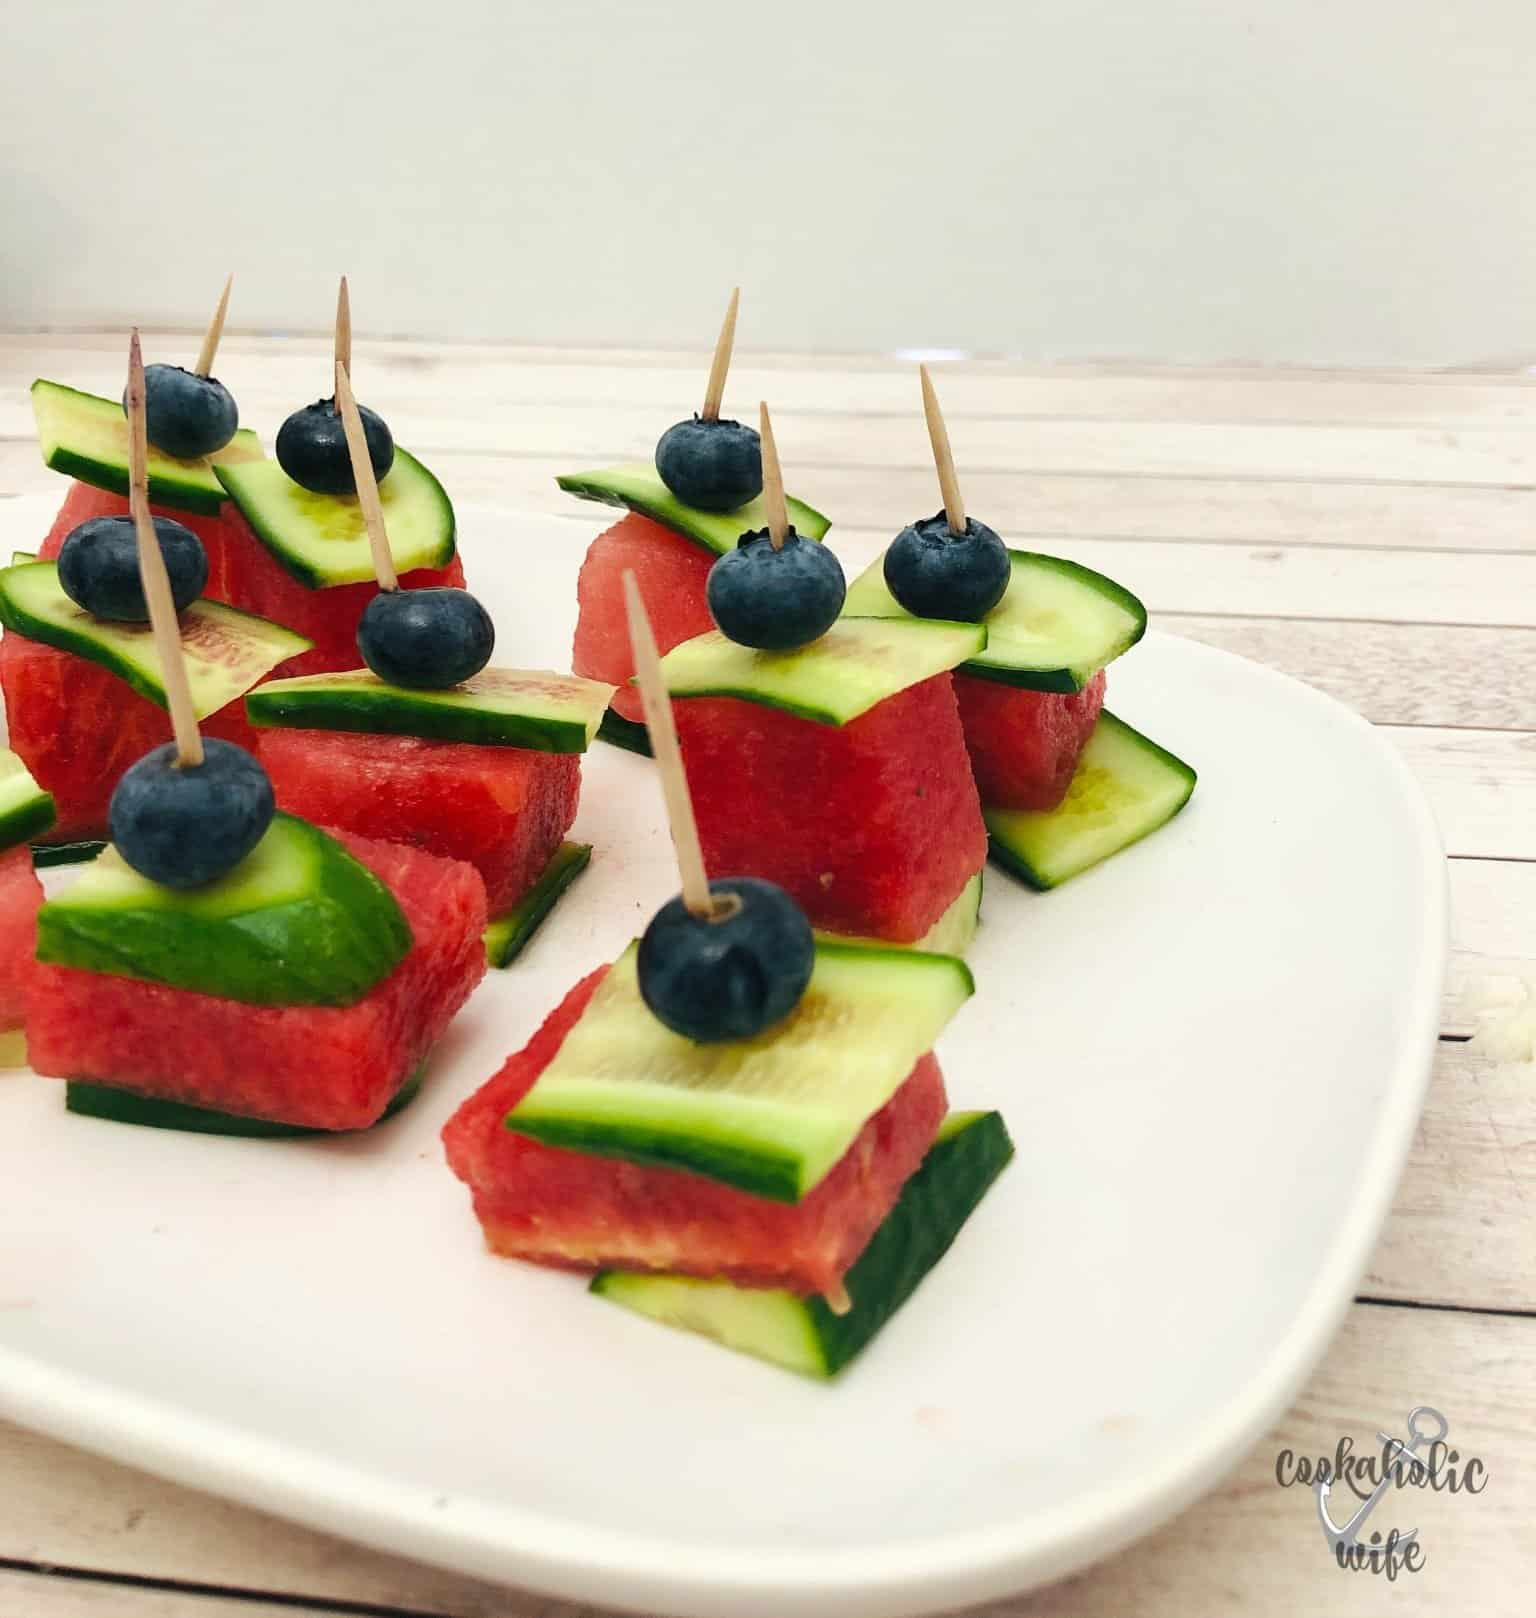 watermelon squares layered between slices of cucumber with a blueberry on top